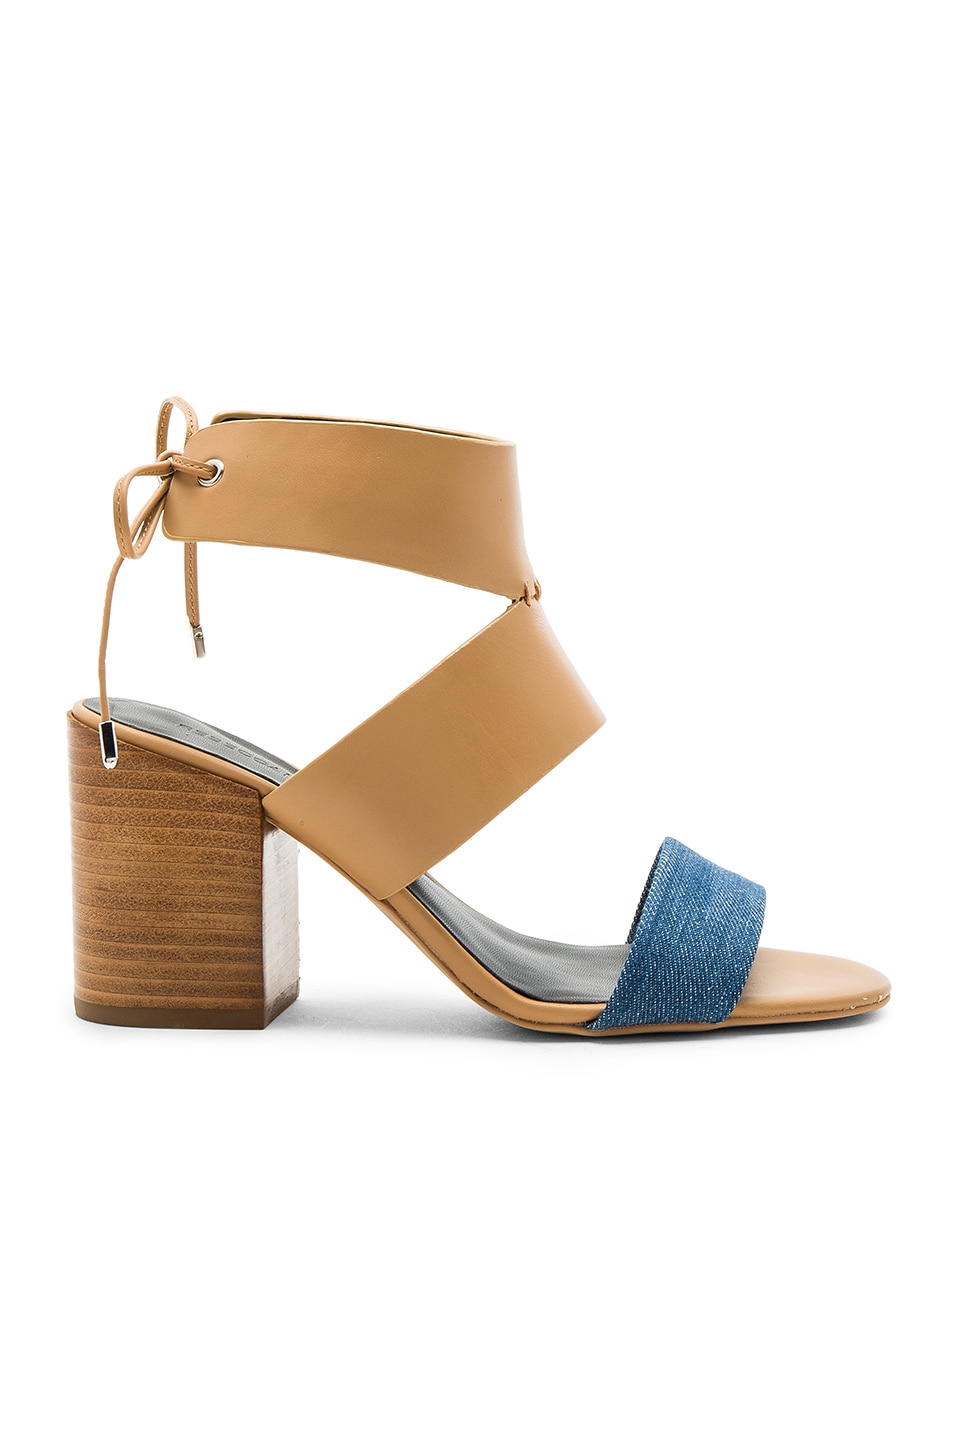 Rebecca Minkoff Christy Heel in Light Blue Denim & Natural Vachetta